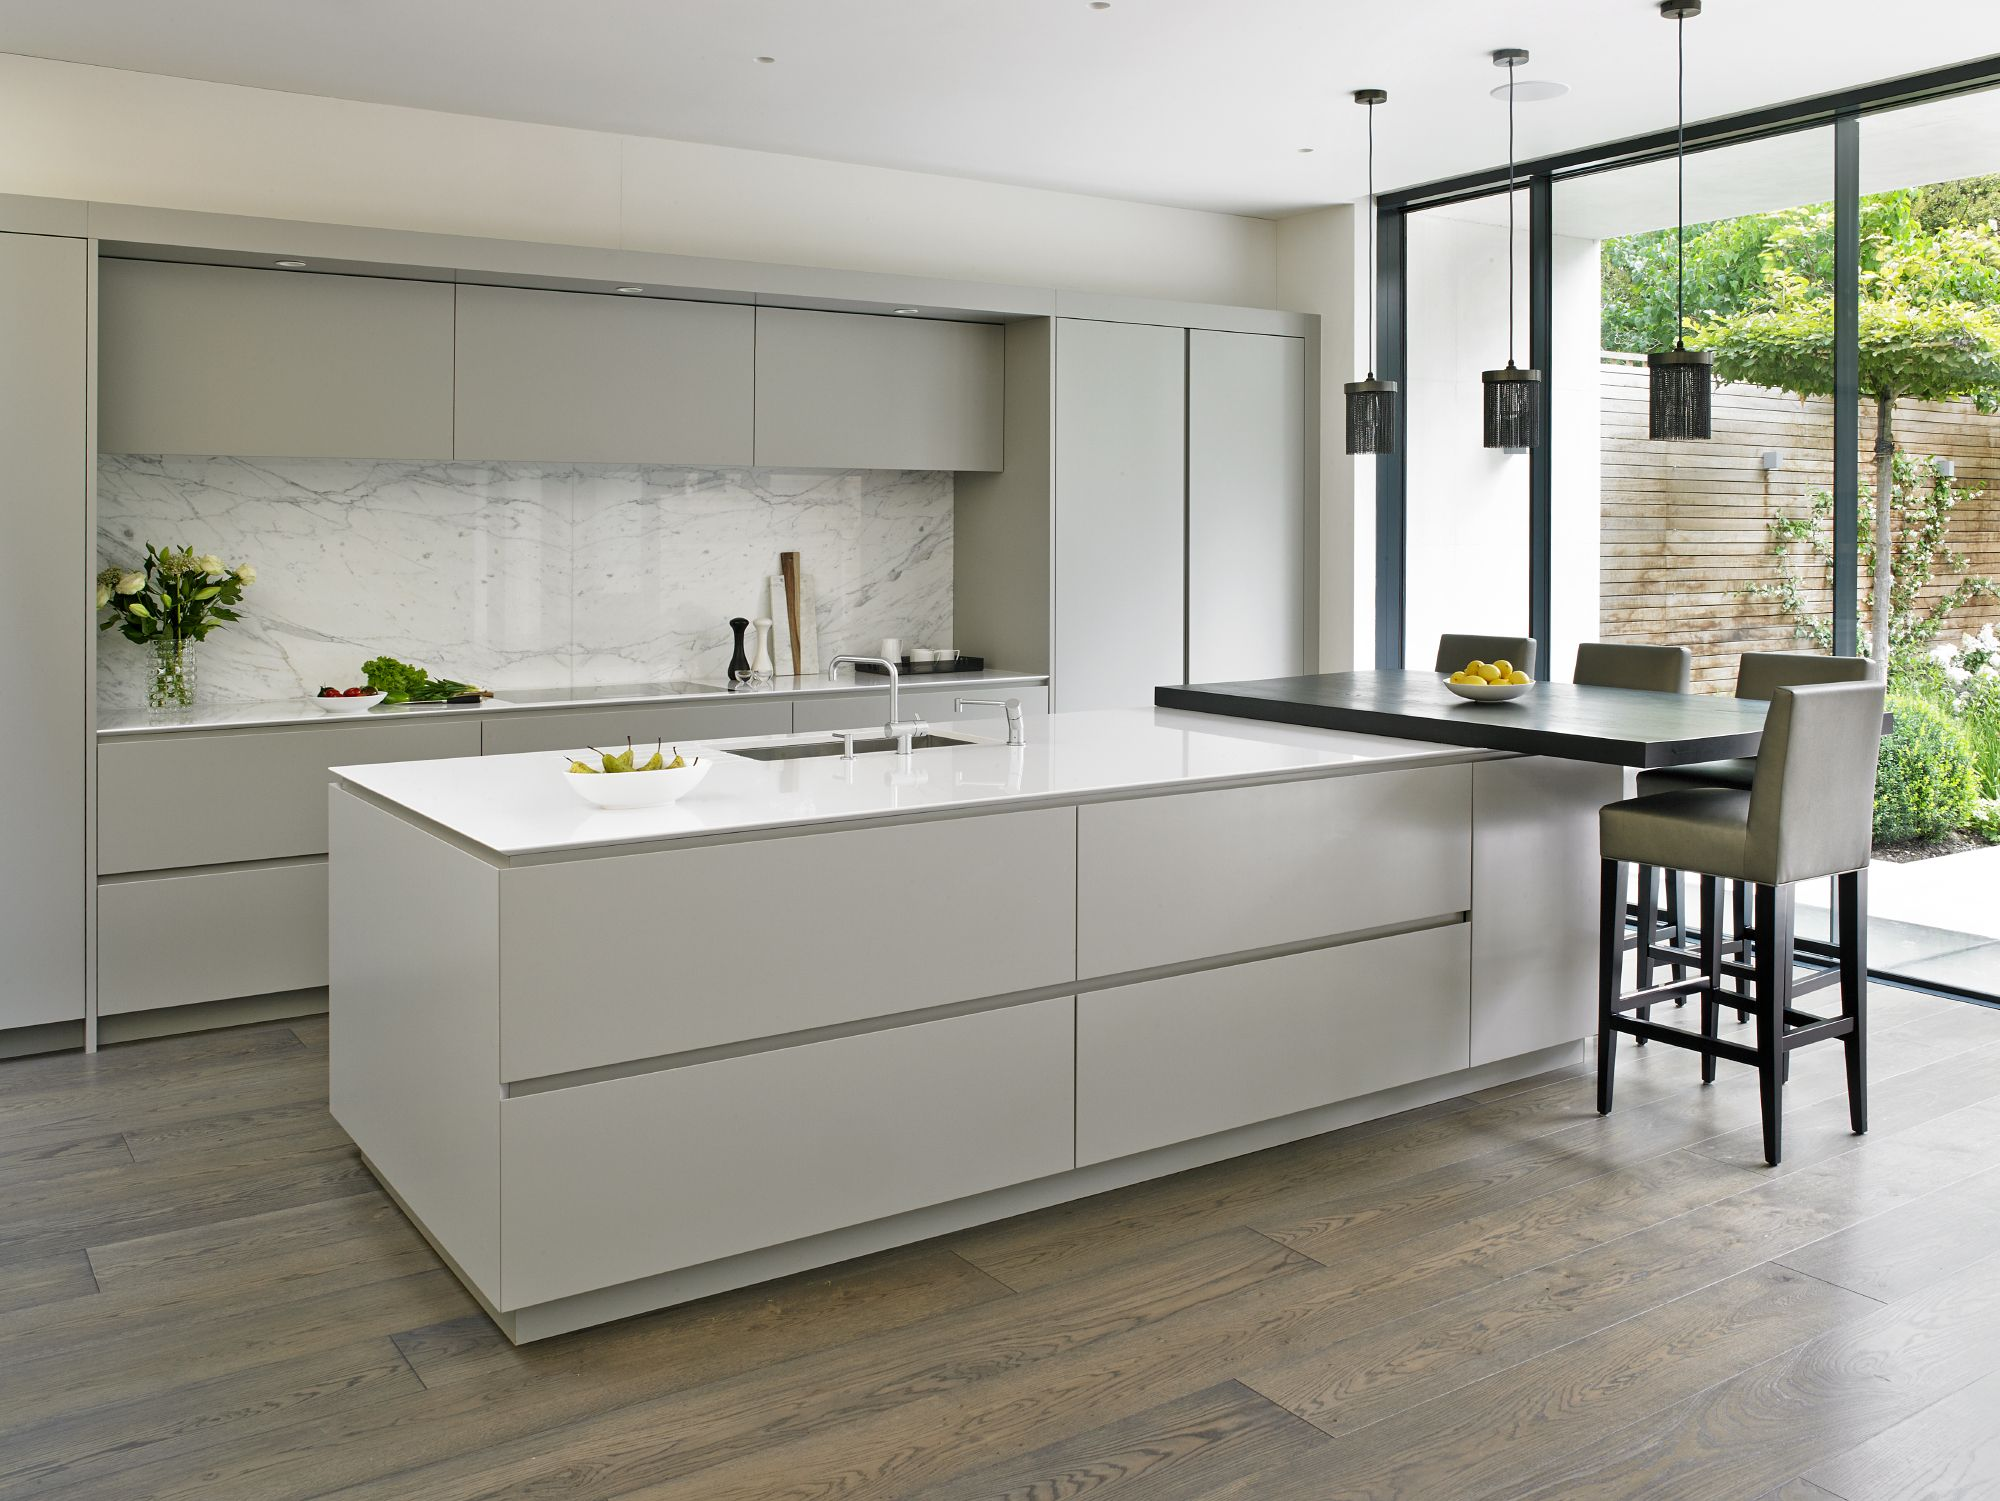 Sleek handleless kitchen design with large island & breakfast bar